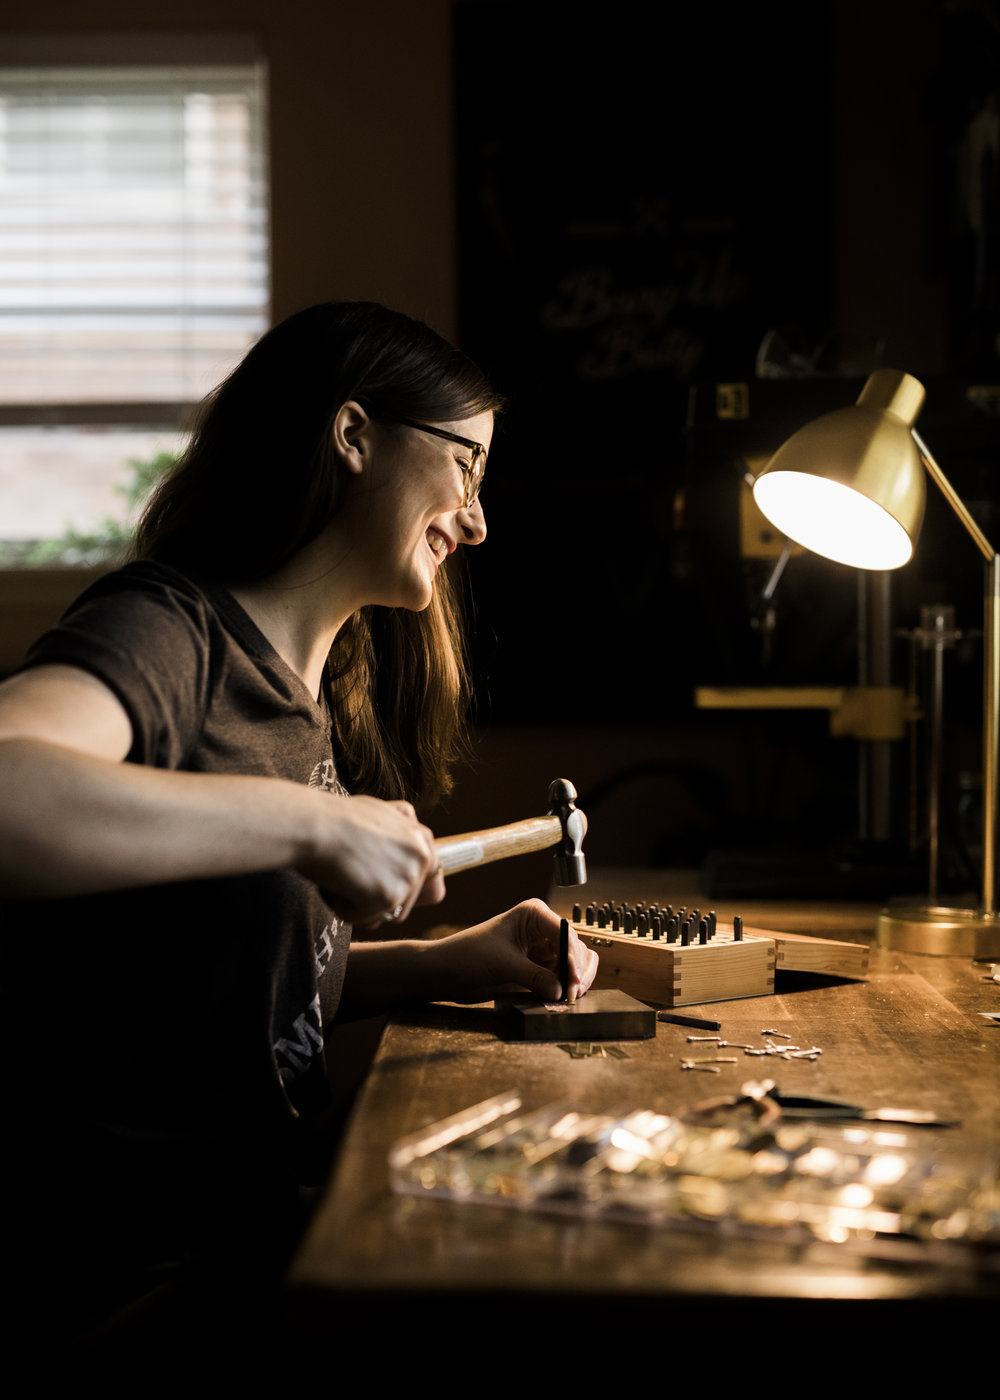 Arkansas jewelry maker Stacey Bowers at work in her home studio in North Little Rock stamping Bang-Up Betty jewelry.